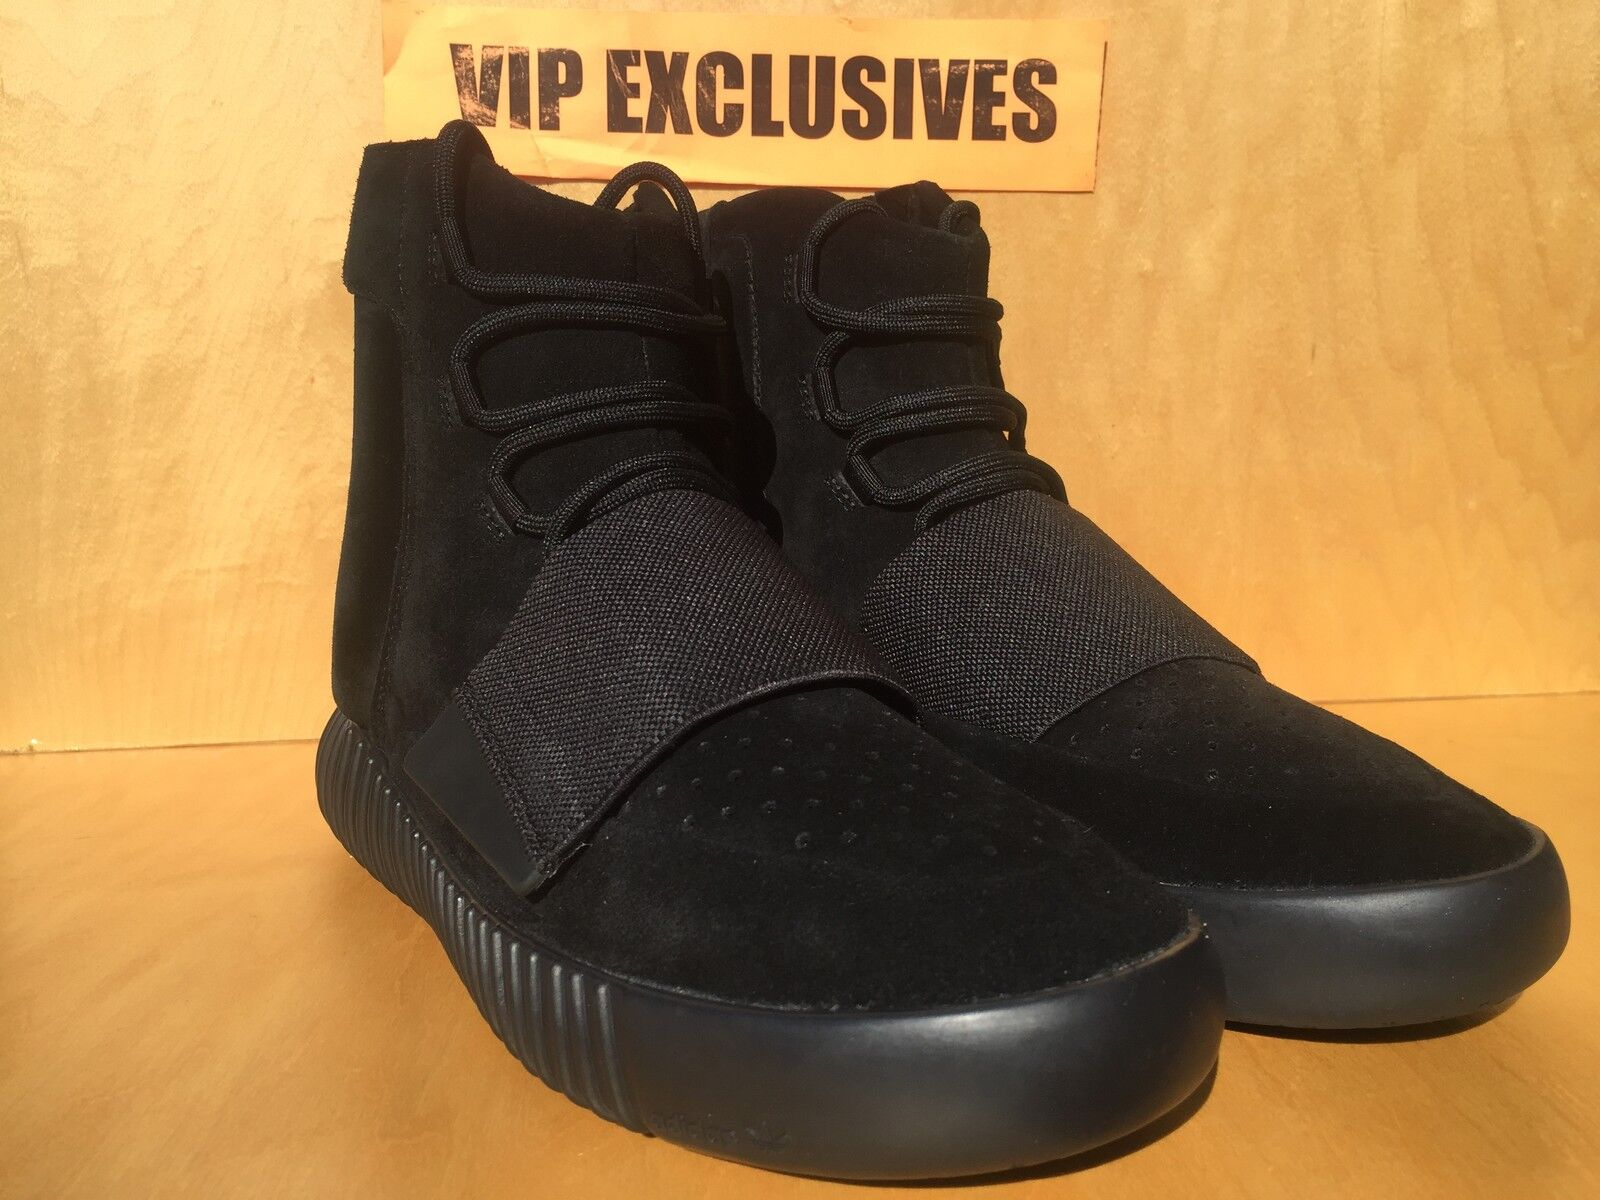 sale retailer b4d3d 4452a low price adidas yeezy boost 750 boost yeezy kanye west pirate triple black  suede bb1839 in